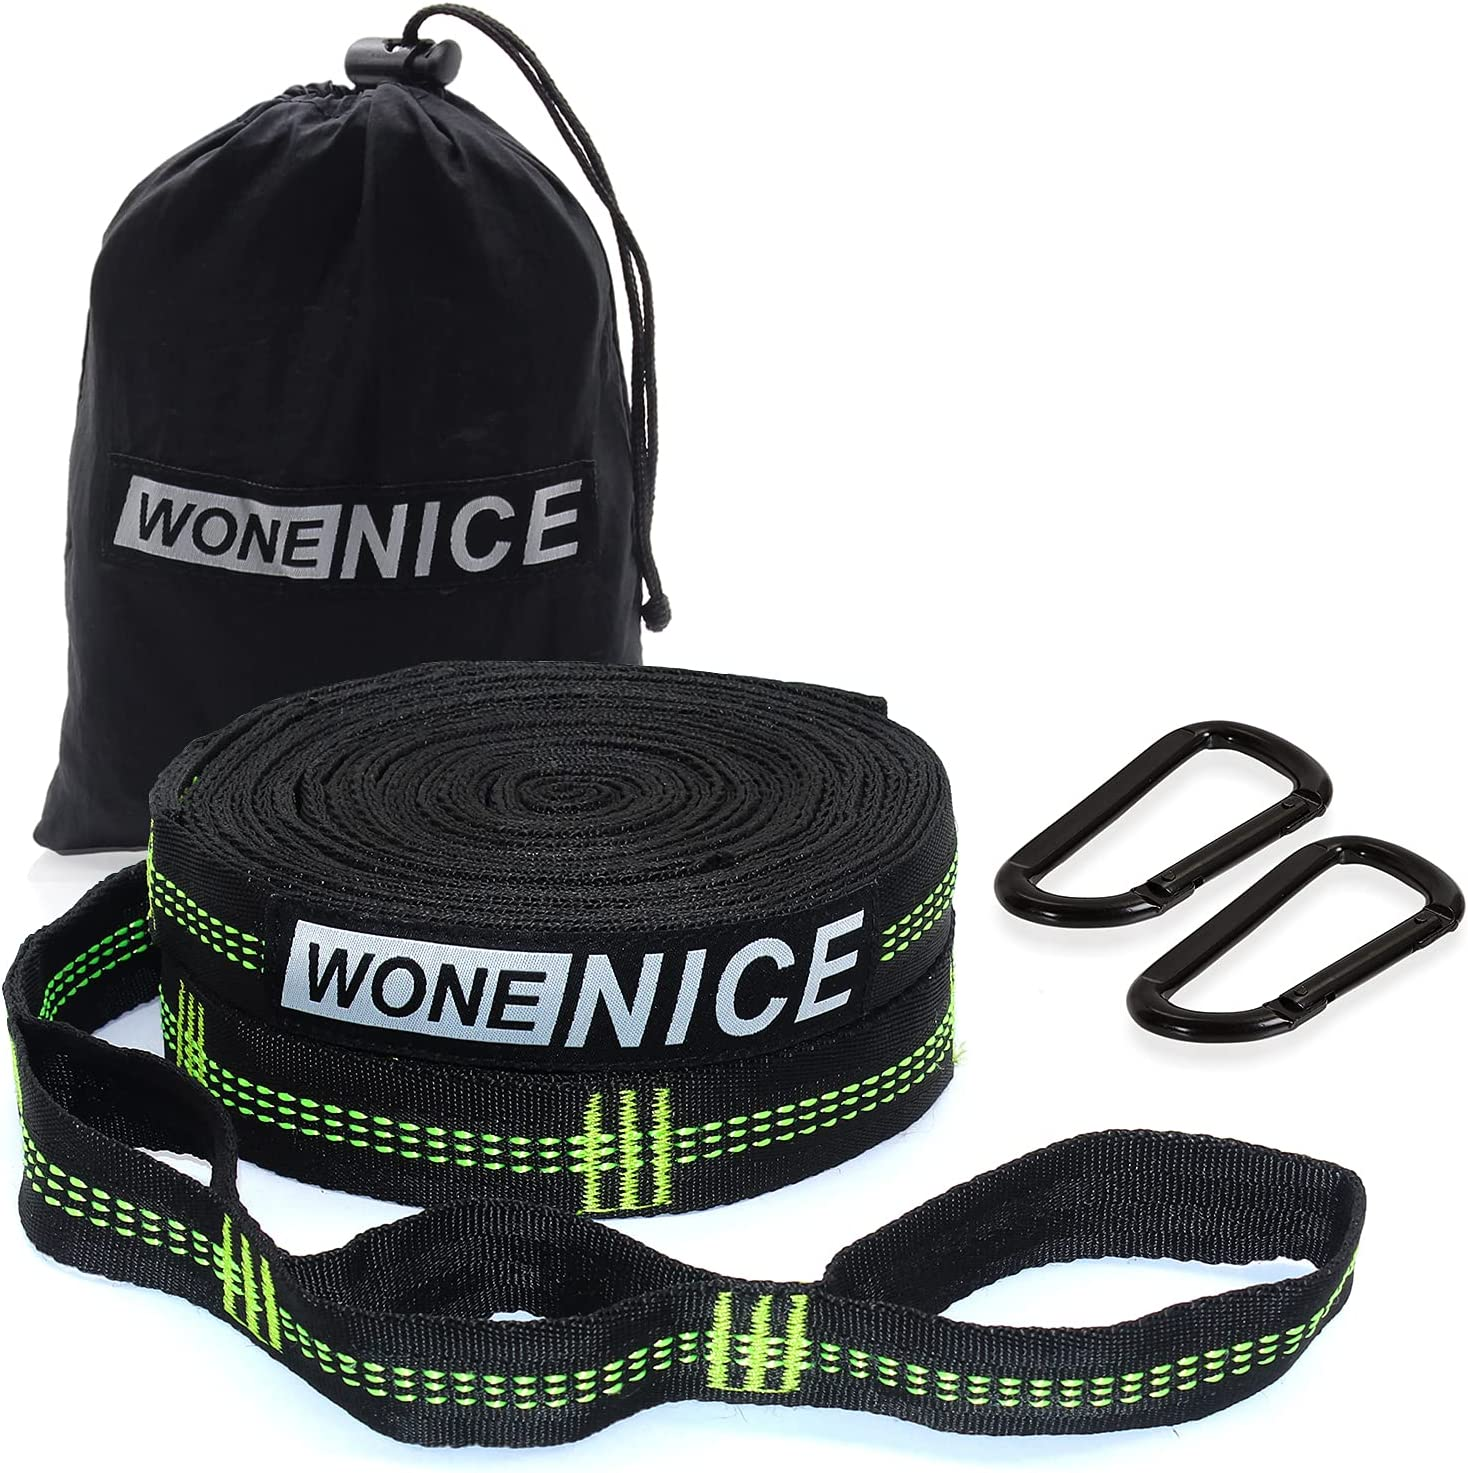 Max 65% OFF Hammock Fashionable Straps with 2 Carabiners Tree WoneNice Hammo for